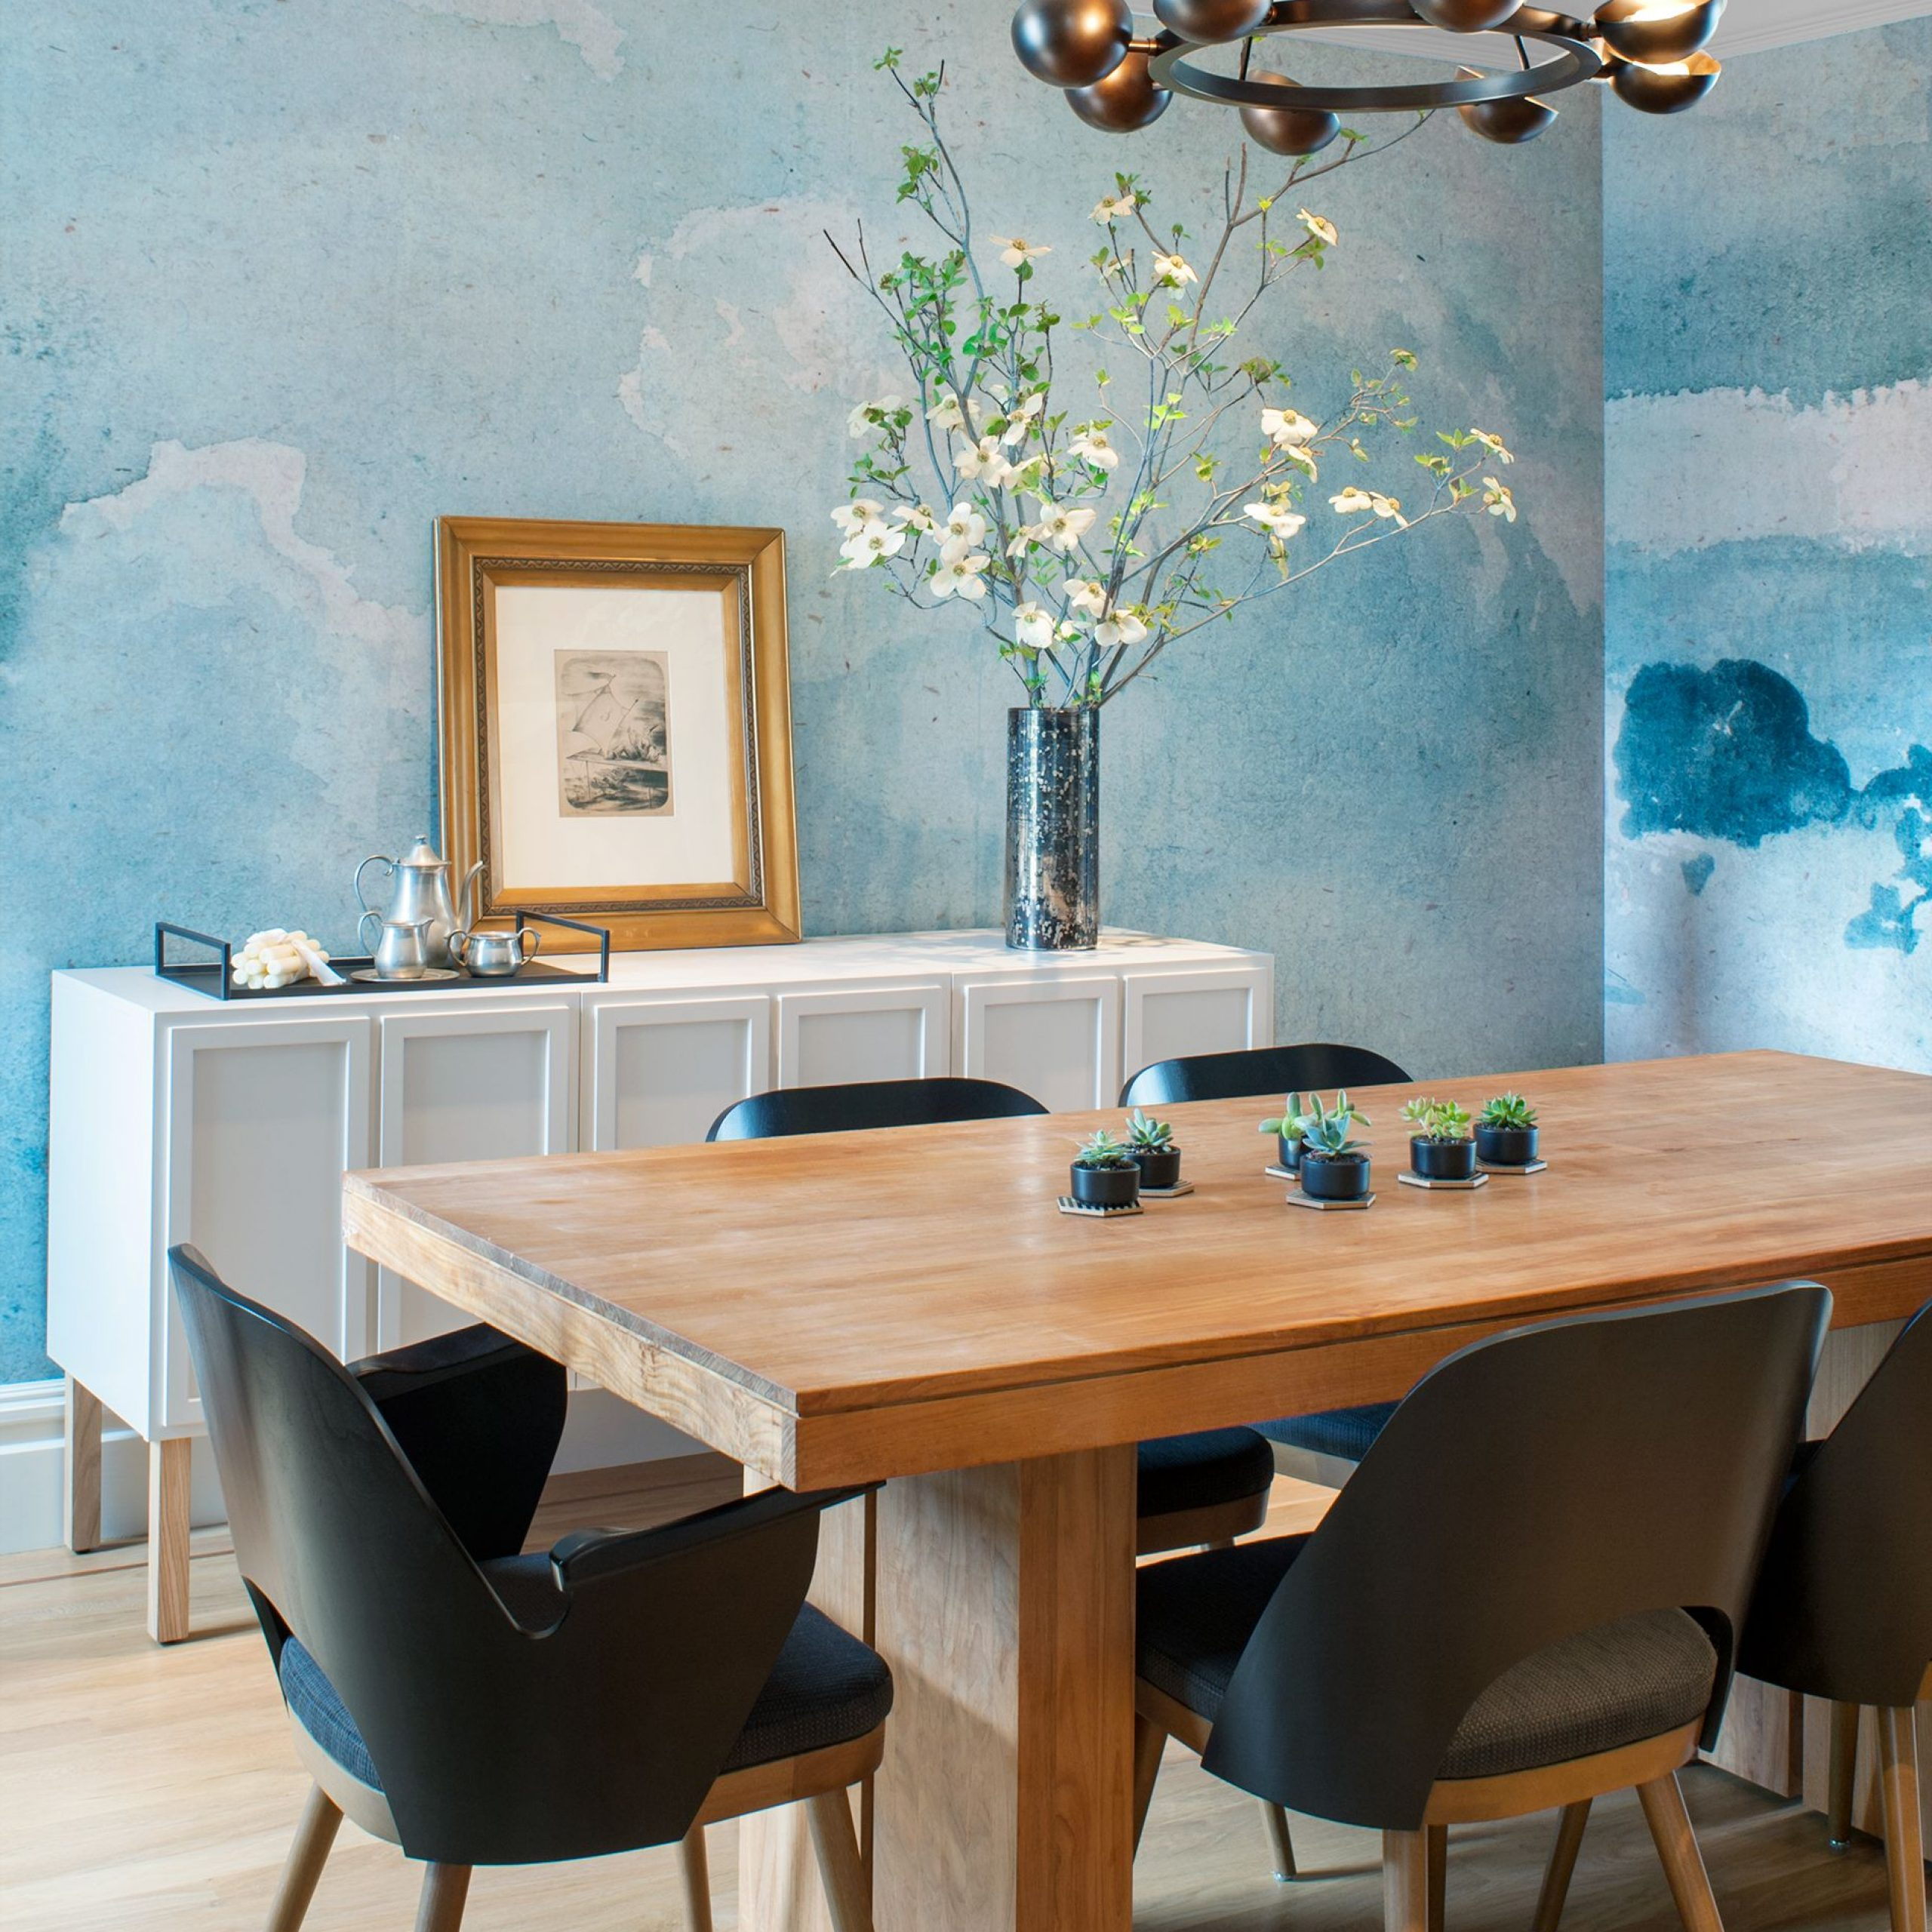 Hearst Oak Wood Dining Tables Throughout Well Known 18 Dining Room Wallpaper Ideas That'll Elevate All Your (View 18 of 25)